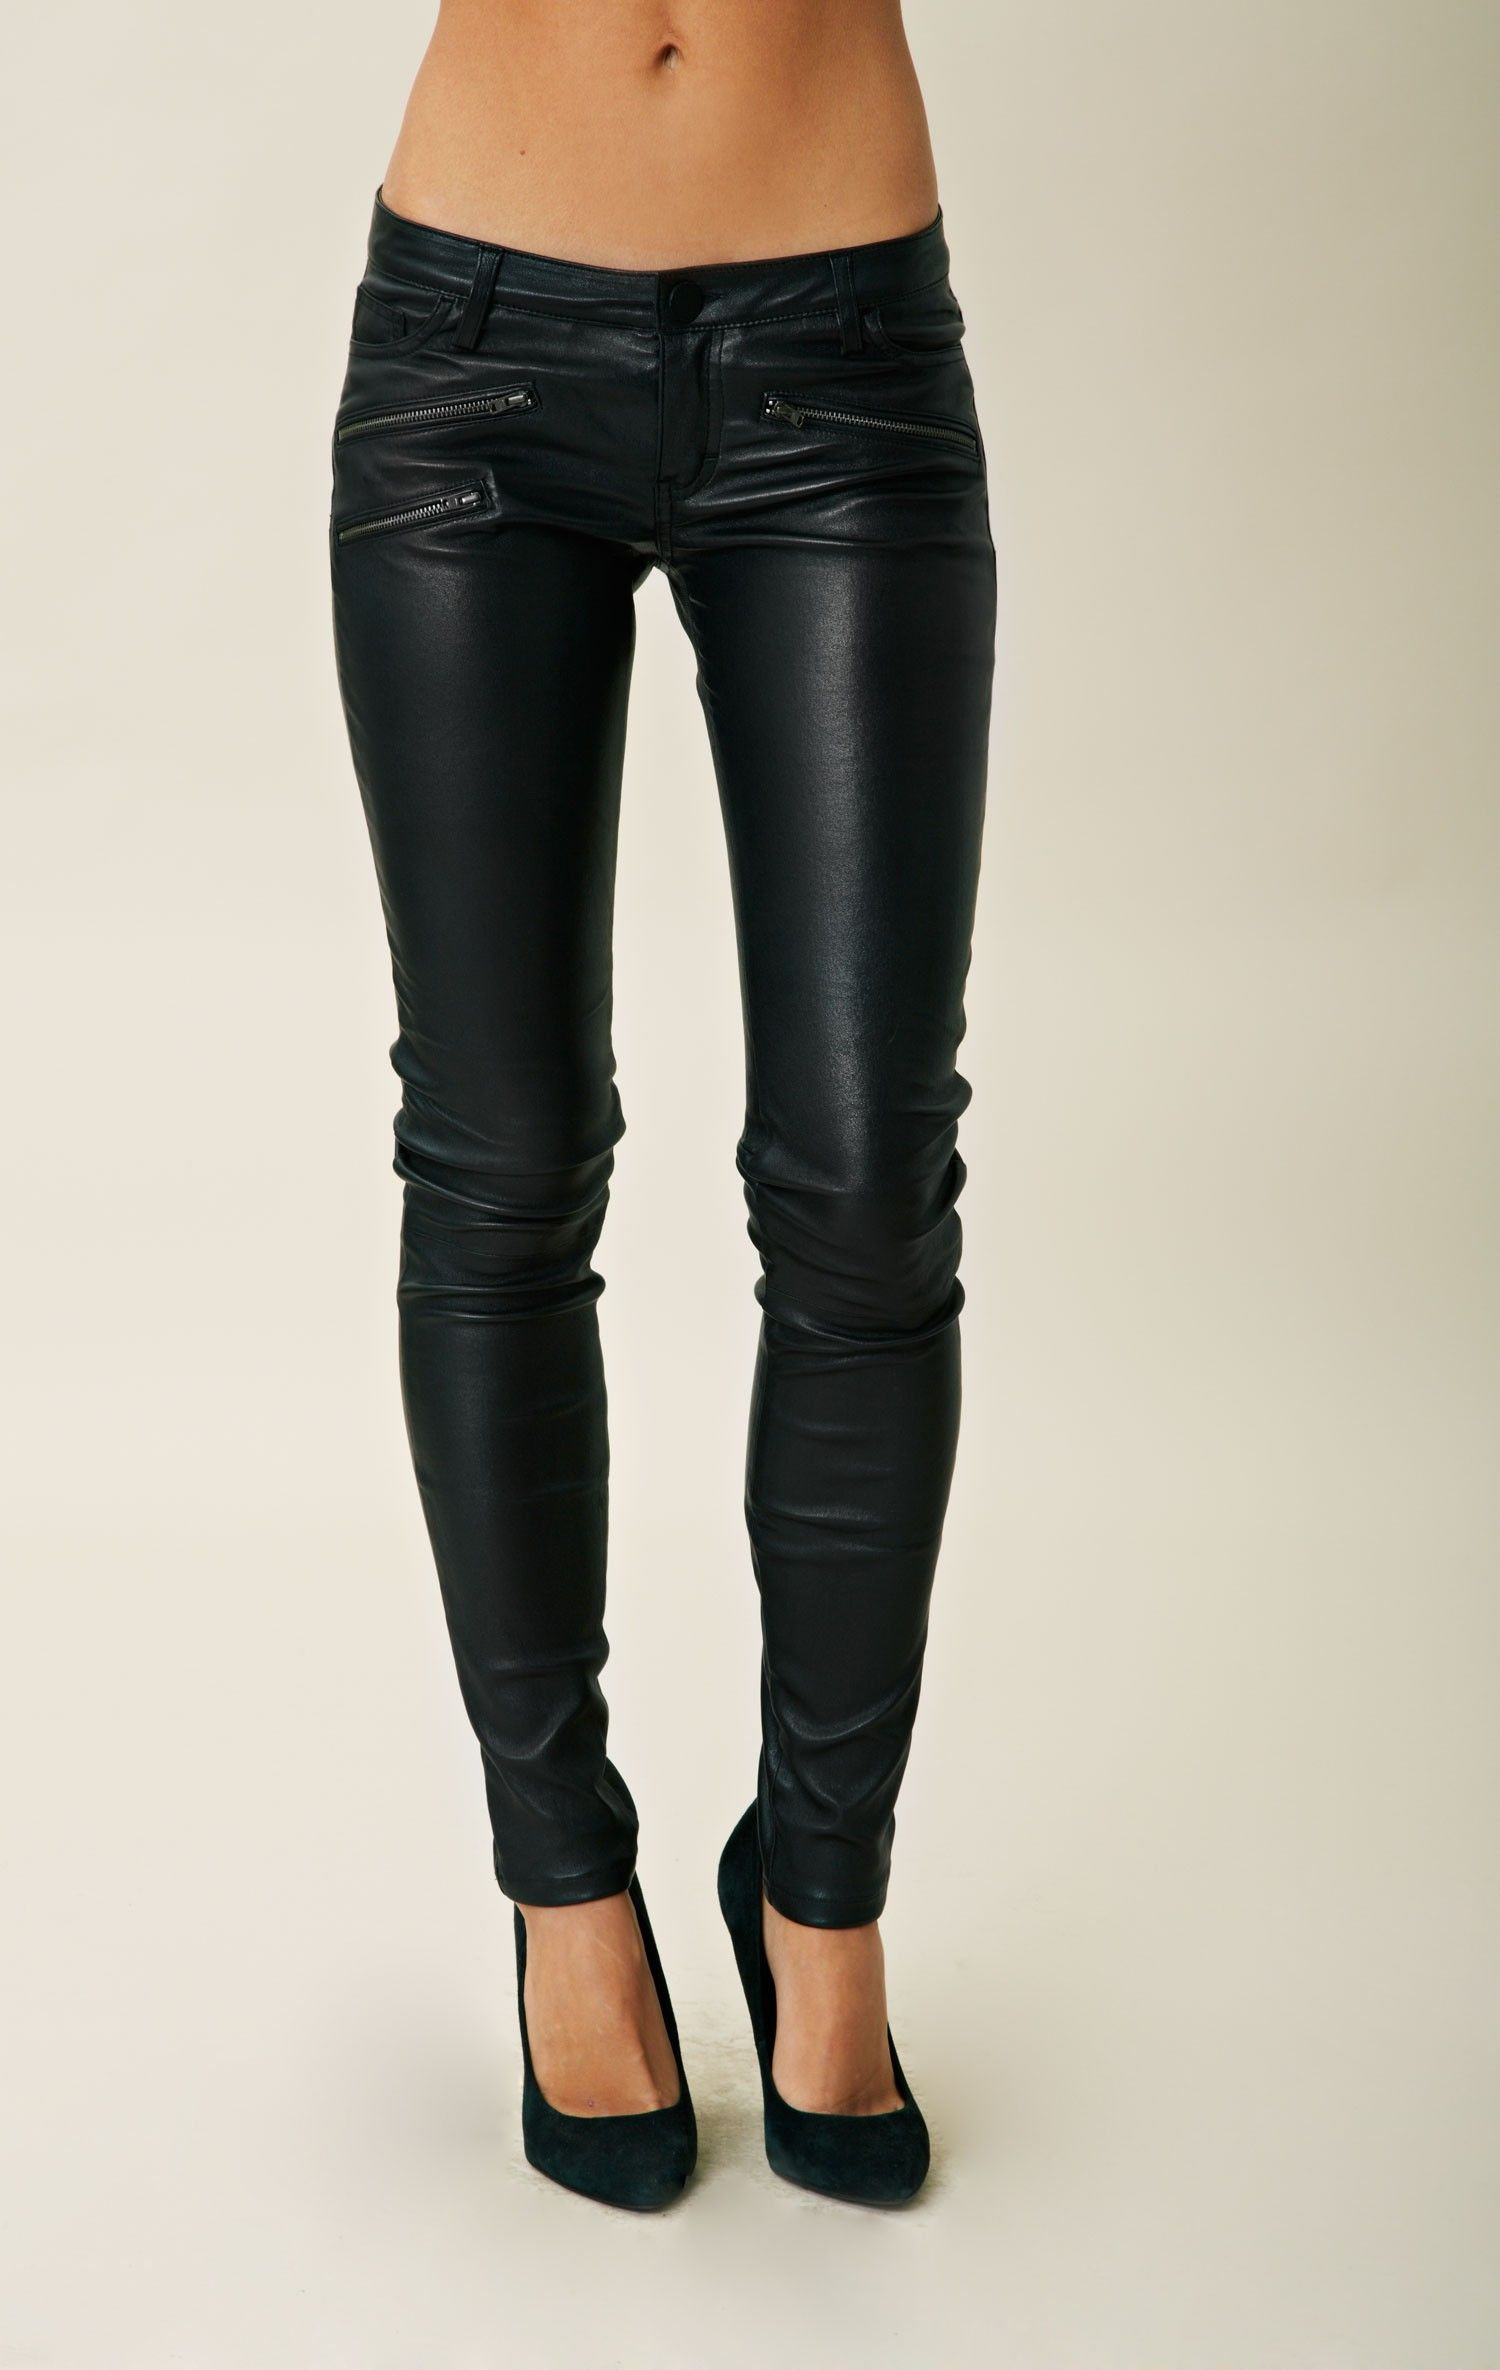 439858f66f black leather pants/leggings with zipper/button/pockets Beautiful!!!!!! Luv  them!